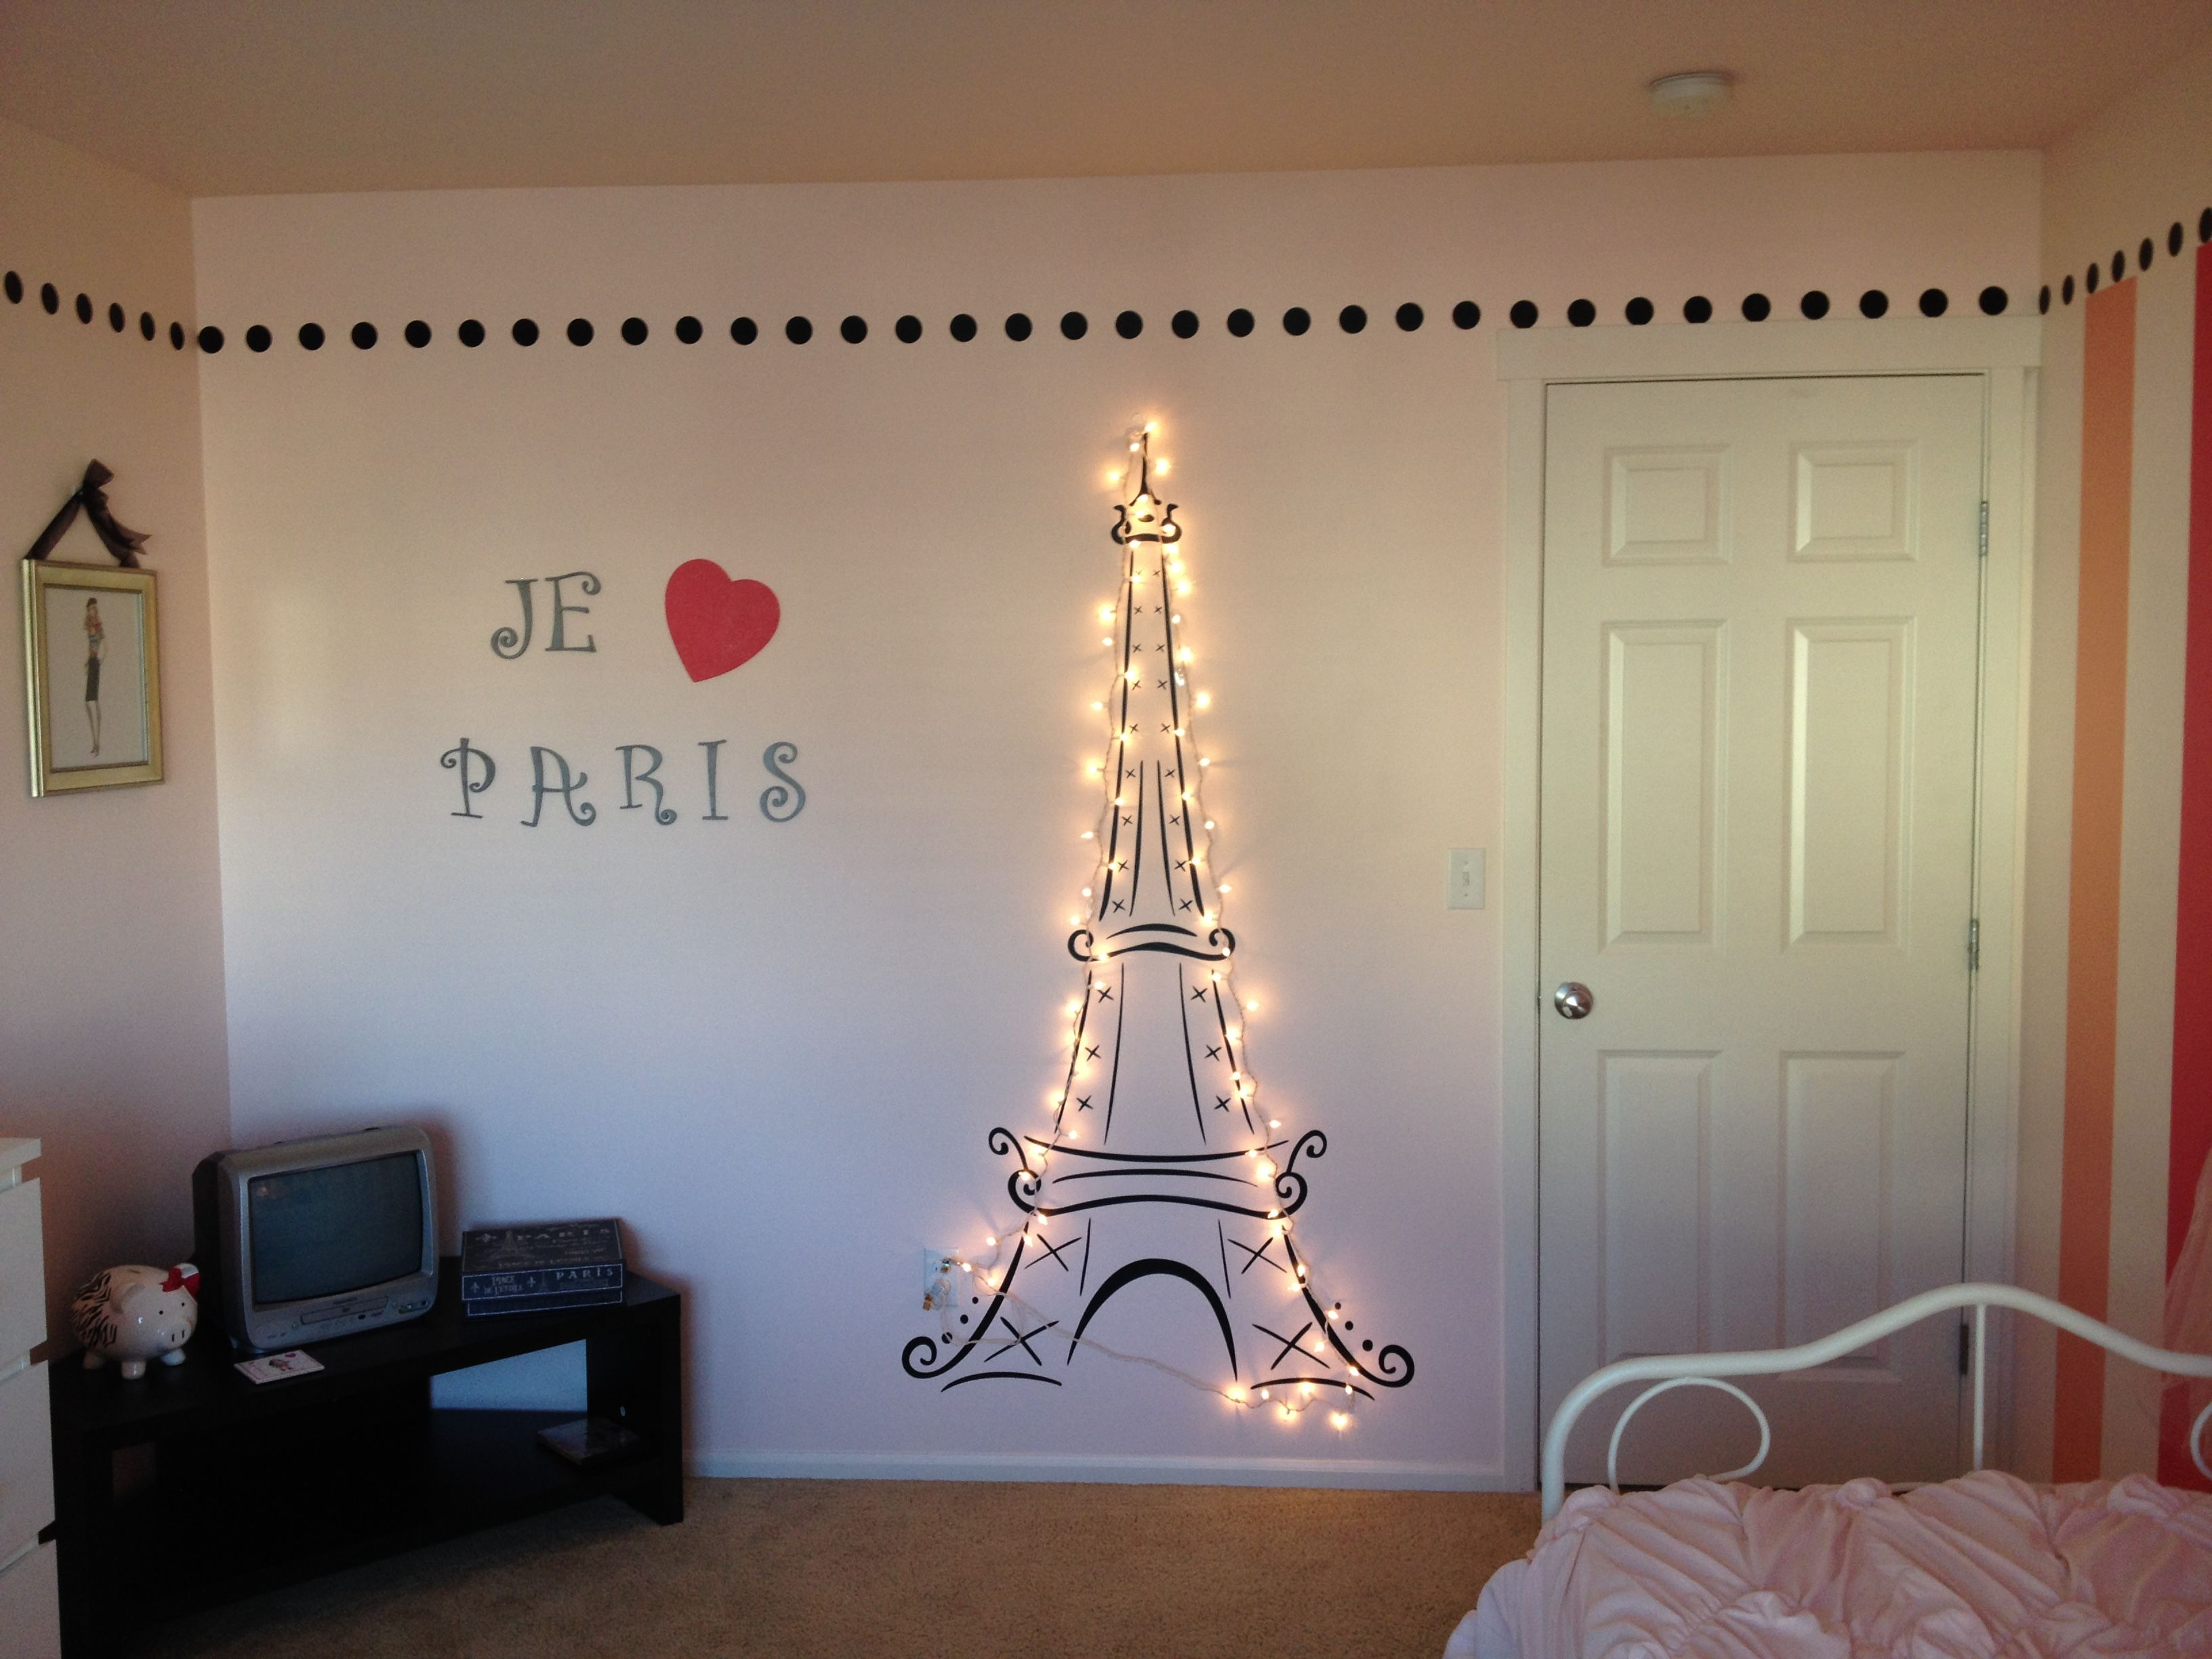 Paris Theme Bedrooms · Lit Eiffel Tower For My Daughteru0027s Paris Themed Room!